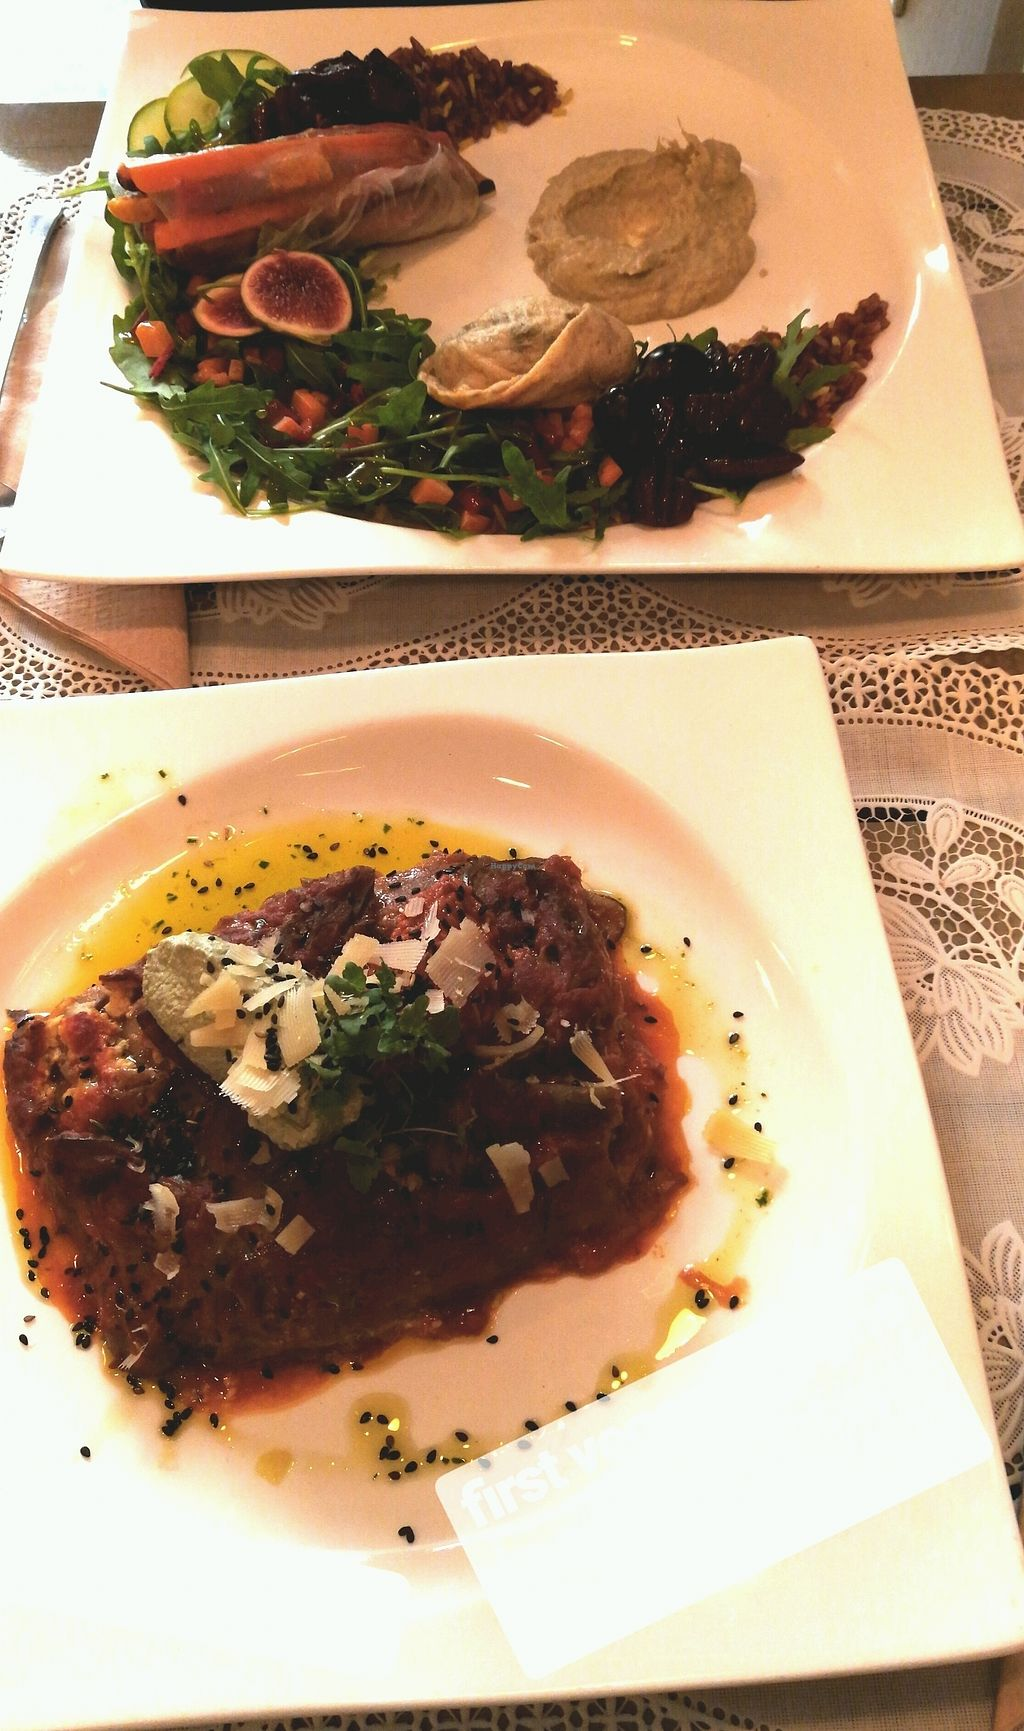 """Photo of Rayen Vegano  by <a href=""""/members/profile/LenaMarie"""">LenaMarie</a> <br/>vegan lasagne & kale spinach dumpling with salad <br/> September 24, 2017  - <a href='/contact/abuse/image/42279/307811'>Report</a>"""